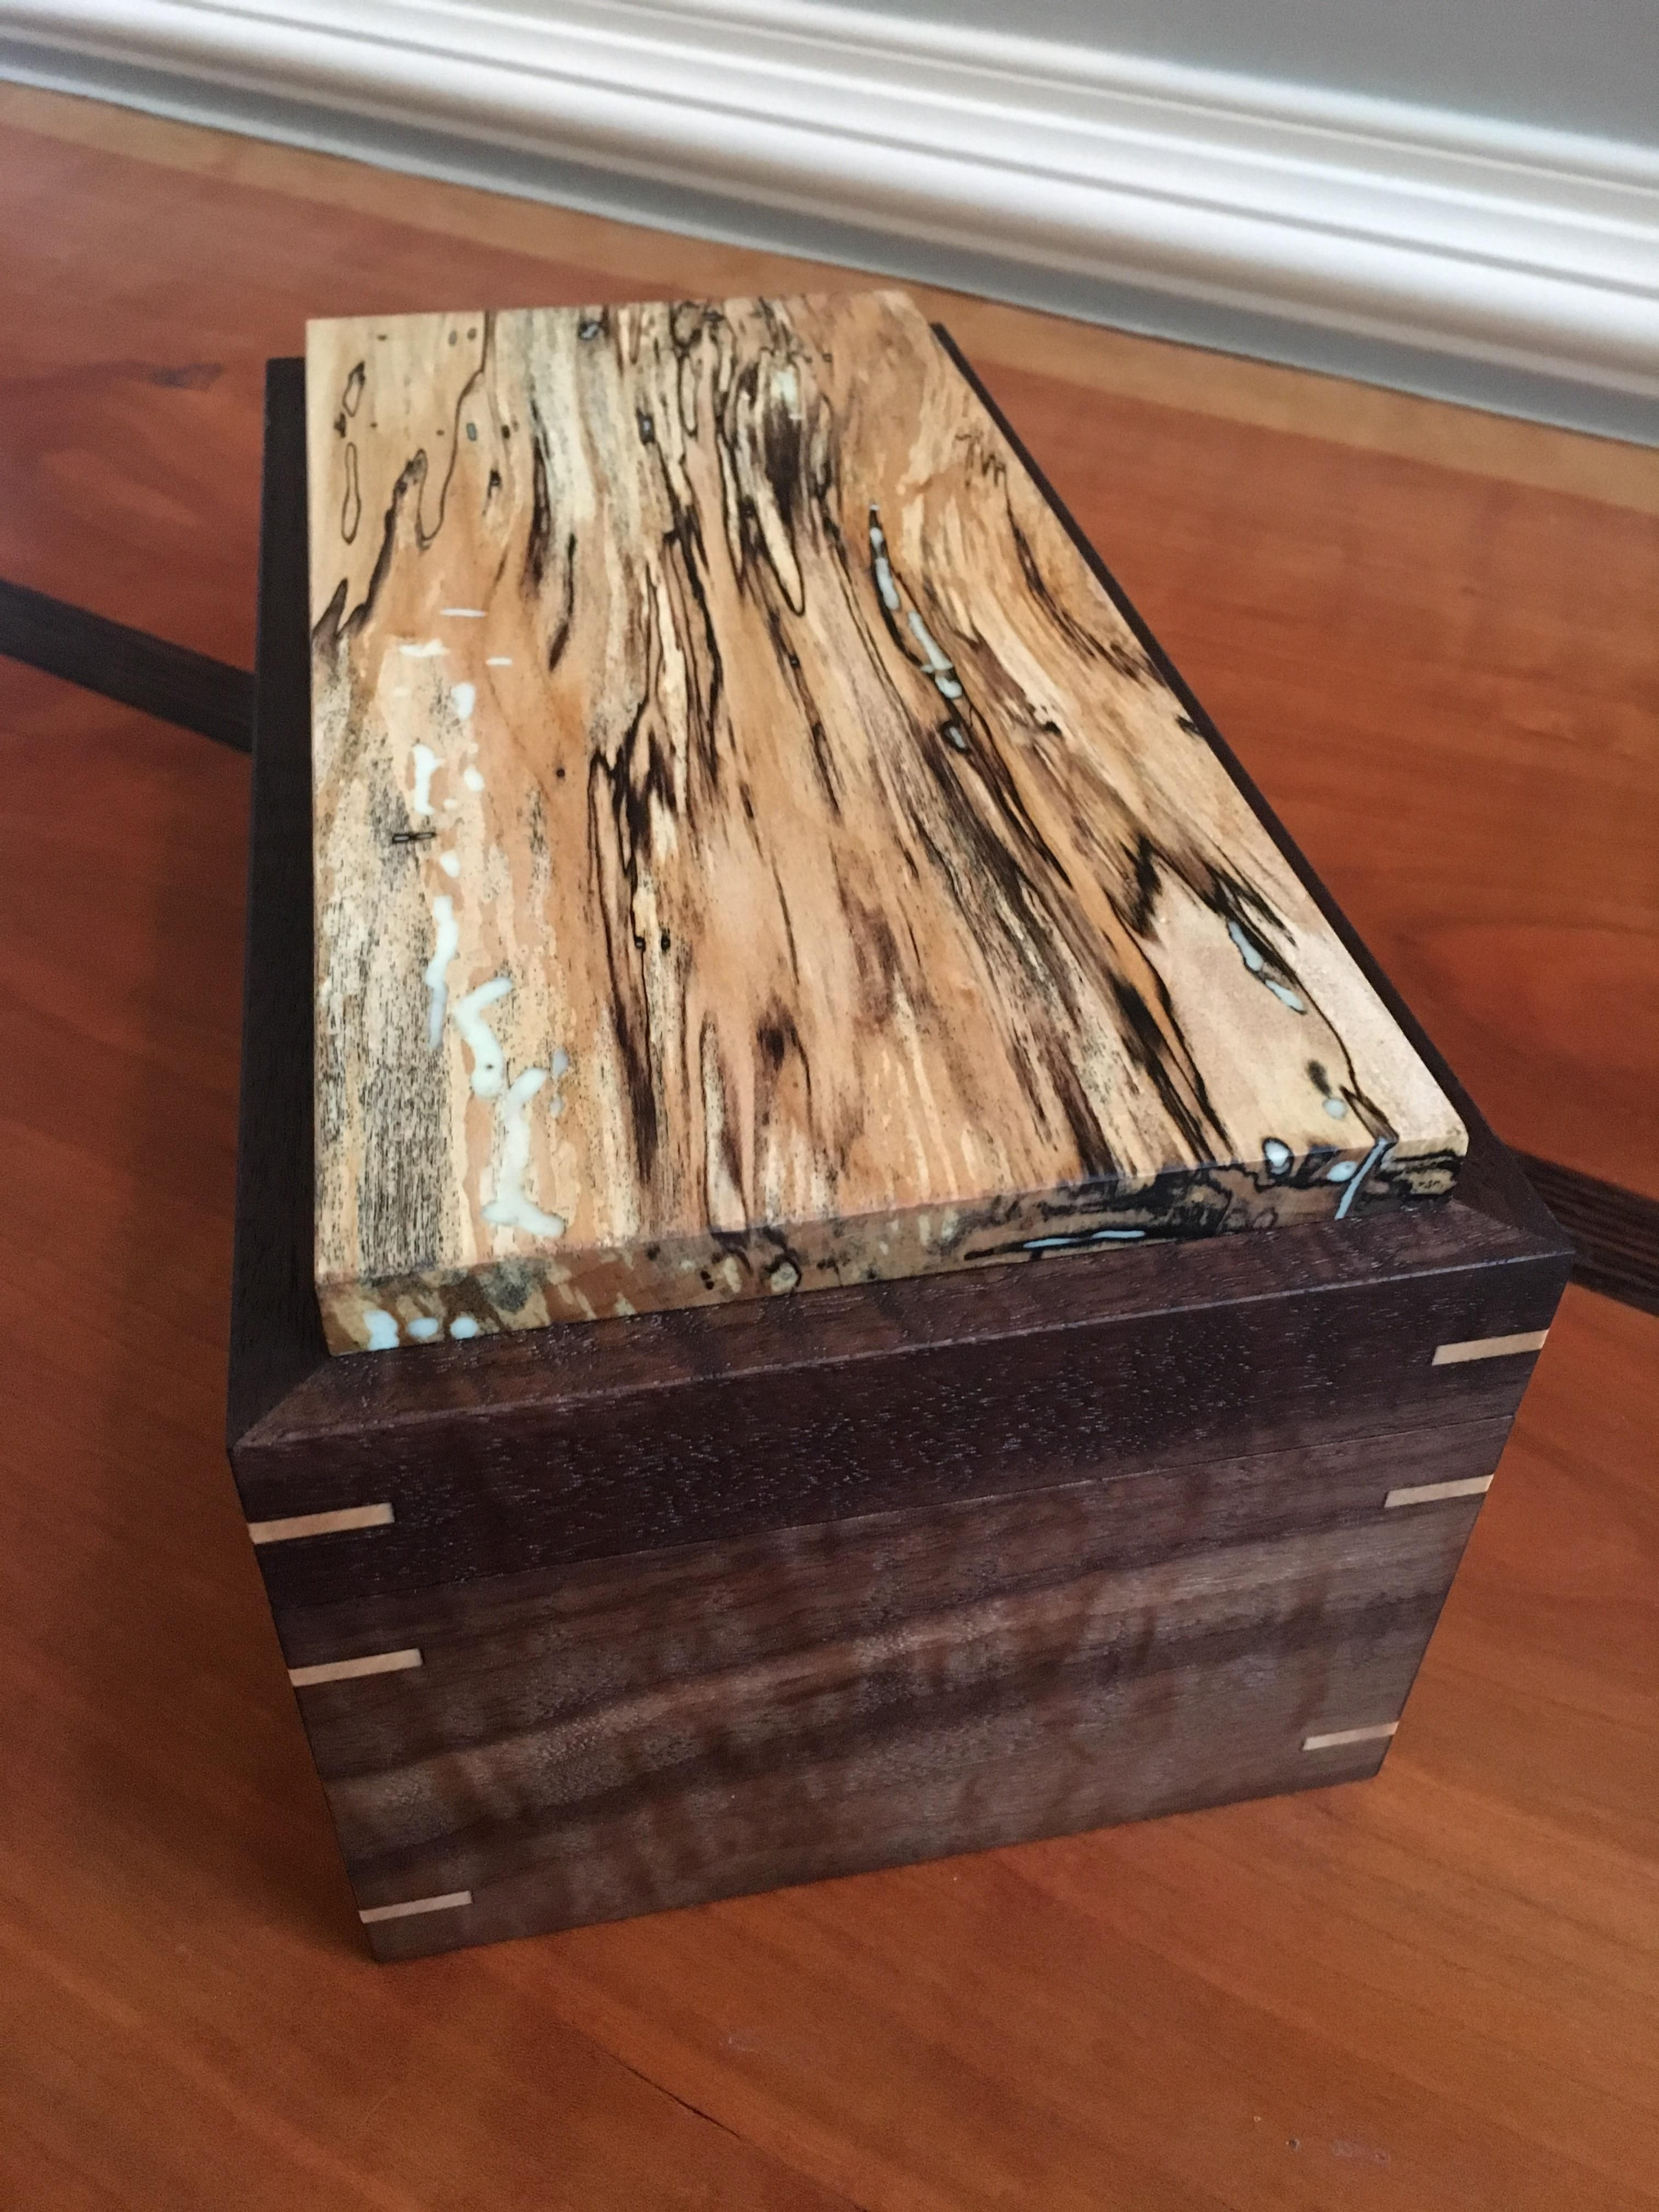 I Filled The Wormholes In My Spalted Maple With Glow In The Dark Epoxy Https Ift Tt 2duu17b Wooden Box Designs Wood Box Design Wooden Box Diy